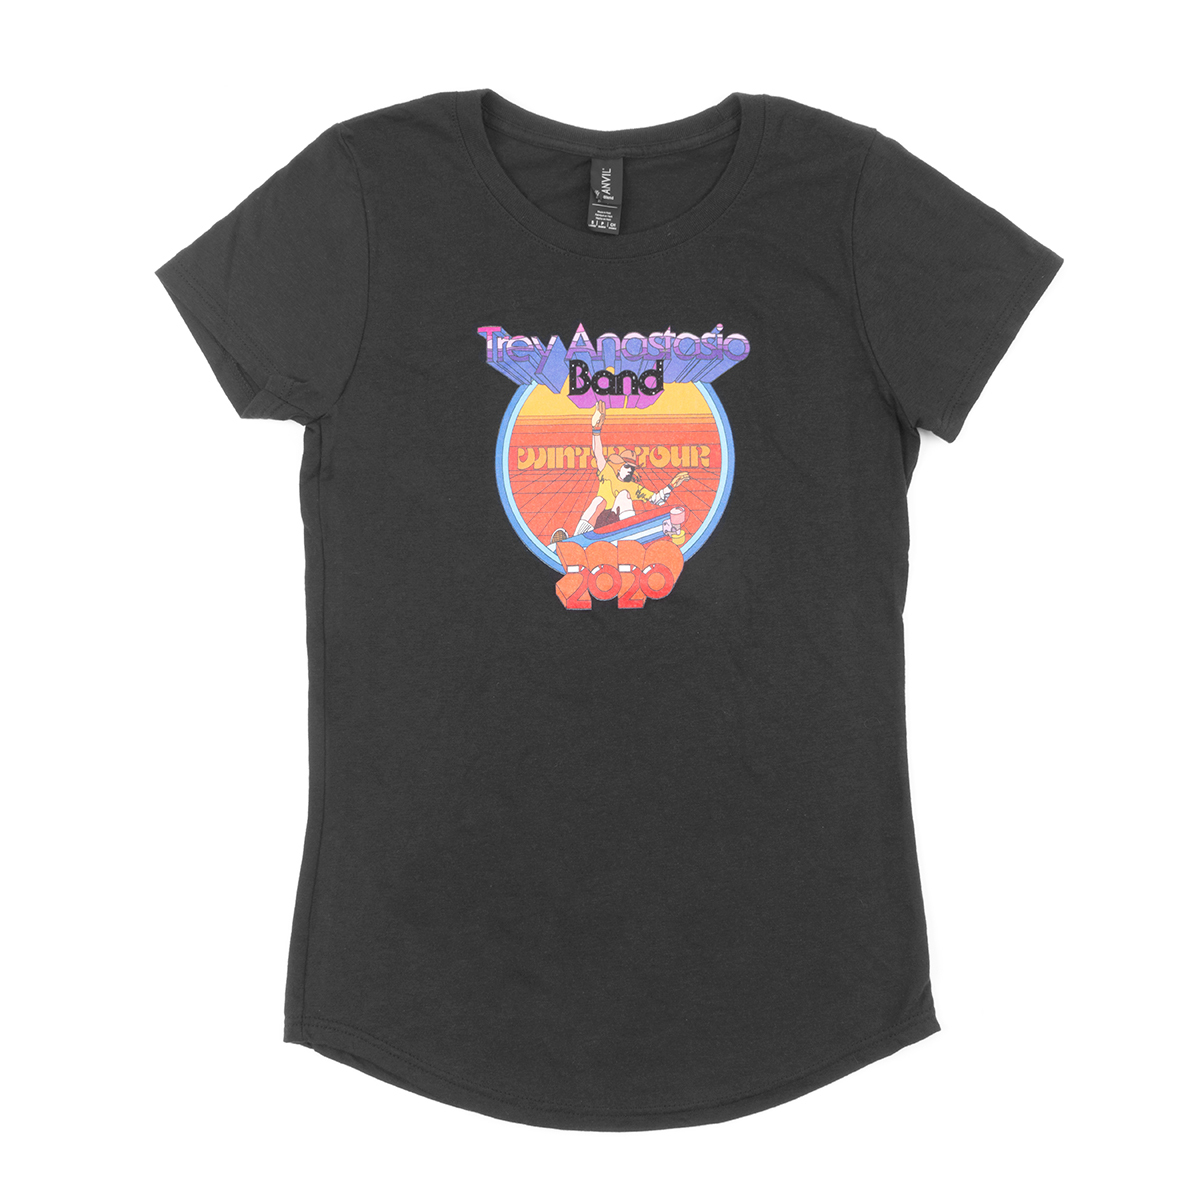 Trey Anastasio Band Women's Skating Cowboy Tee